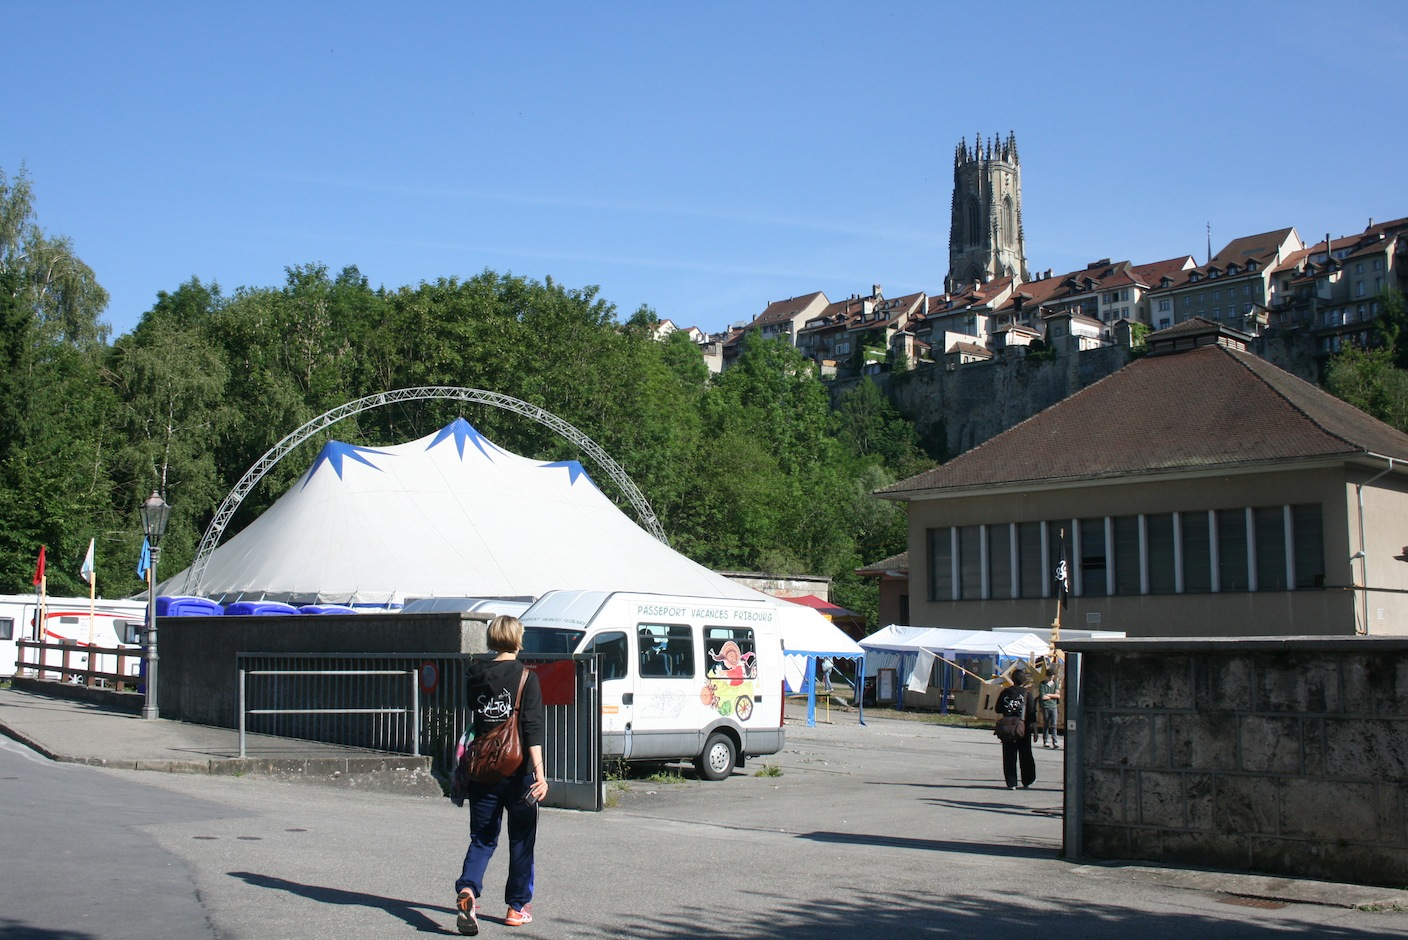 Salto in Fribourg